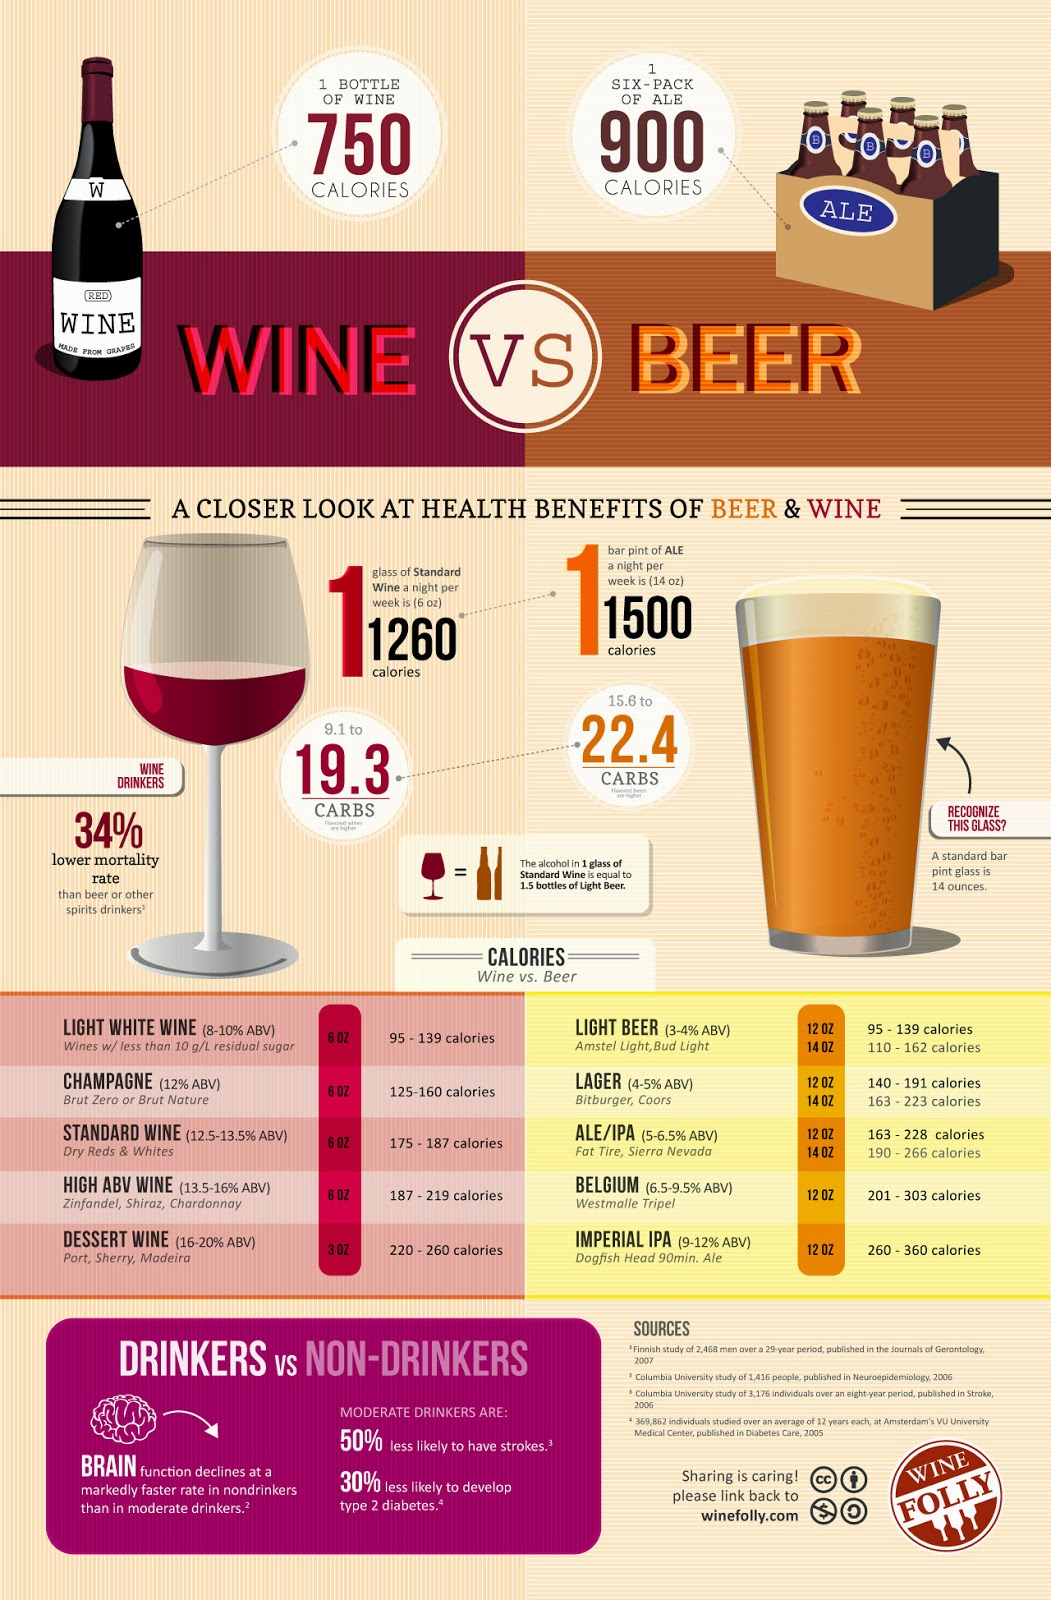 Wine Vs Beer Calories Infographic